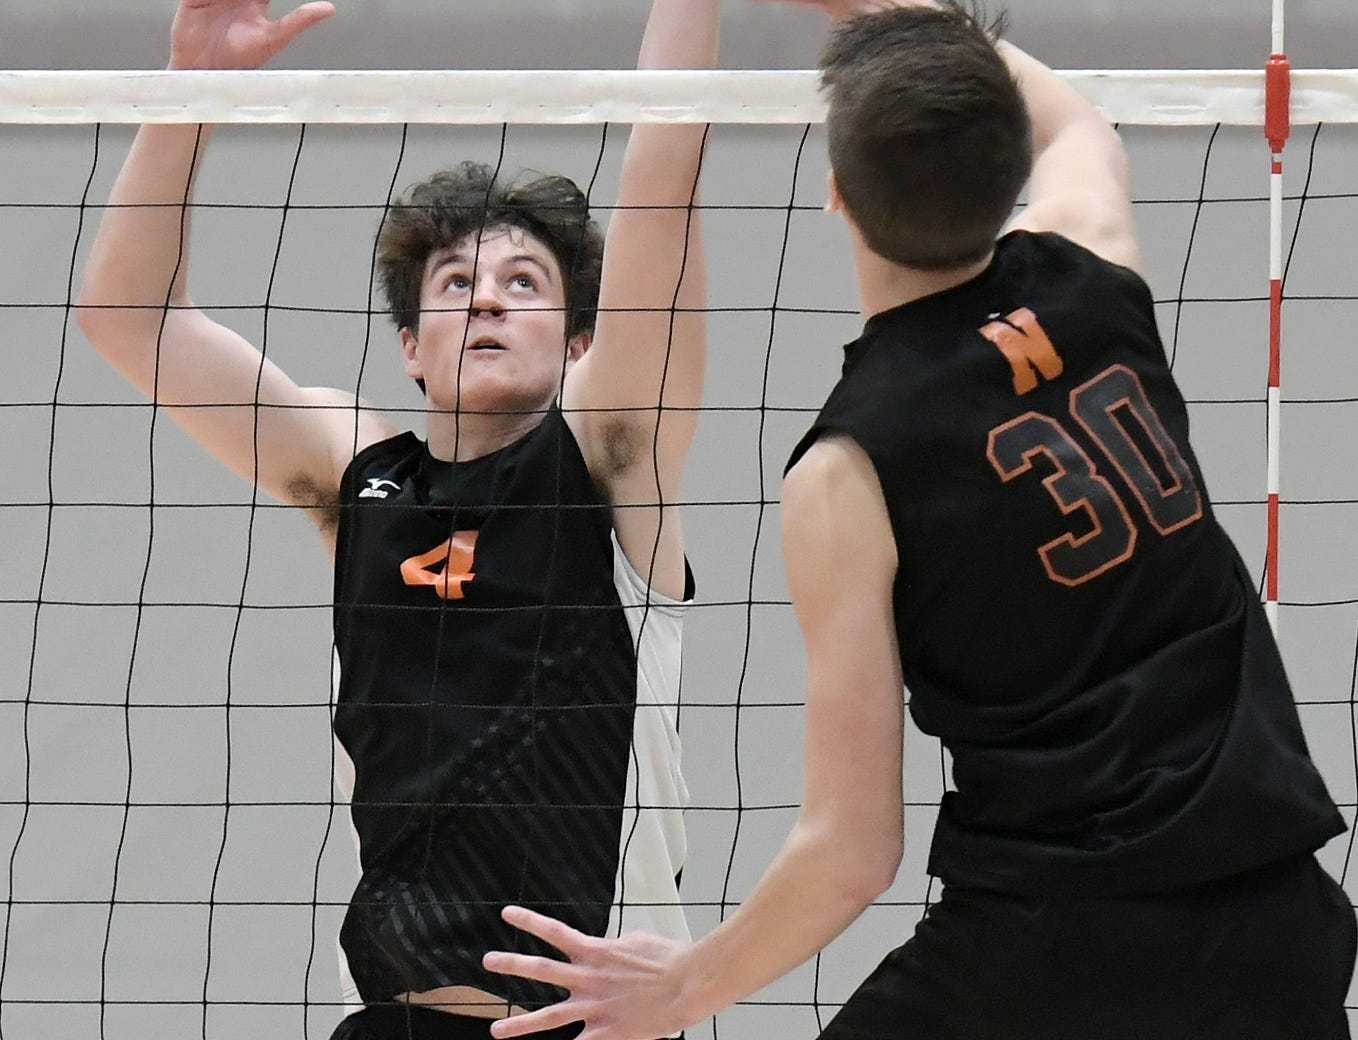 Central York falls to visiting Northeastern Tuesday, May 7, 2019. The Bobcats earned the York-Adams League regular-season title with a 3-1 win. Bill Kalina photo